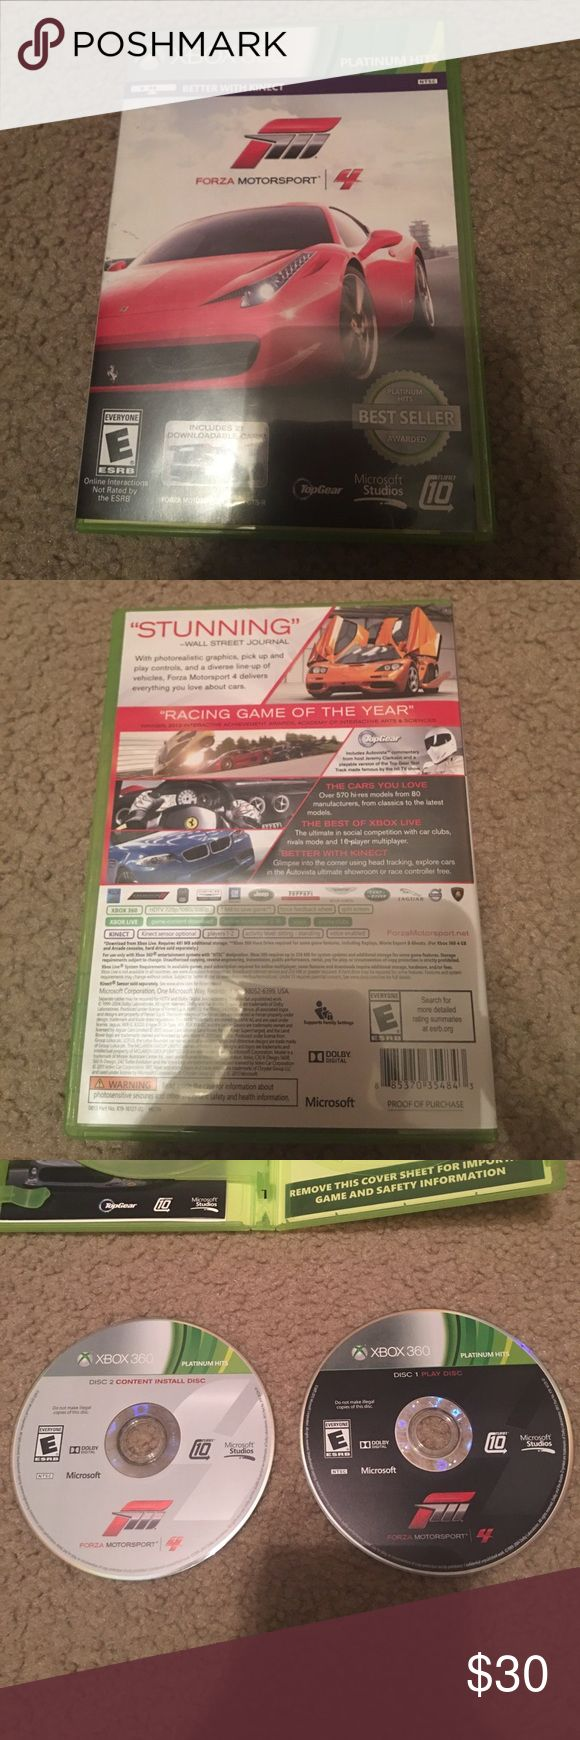 Forza motor sport 4 XBOX 360 The game was only used a few times and is still in brand new condition. Really fun and comes with two discs and they still work. xbox 360 Other